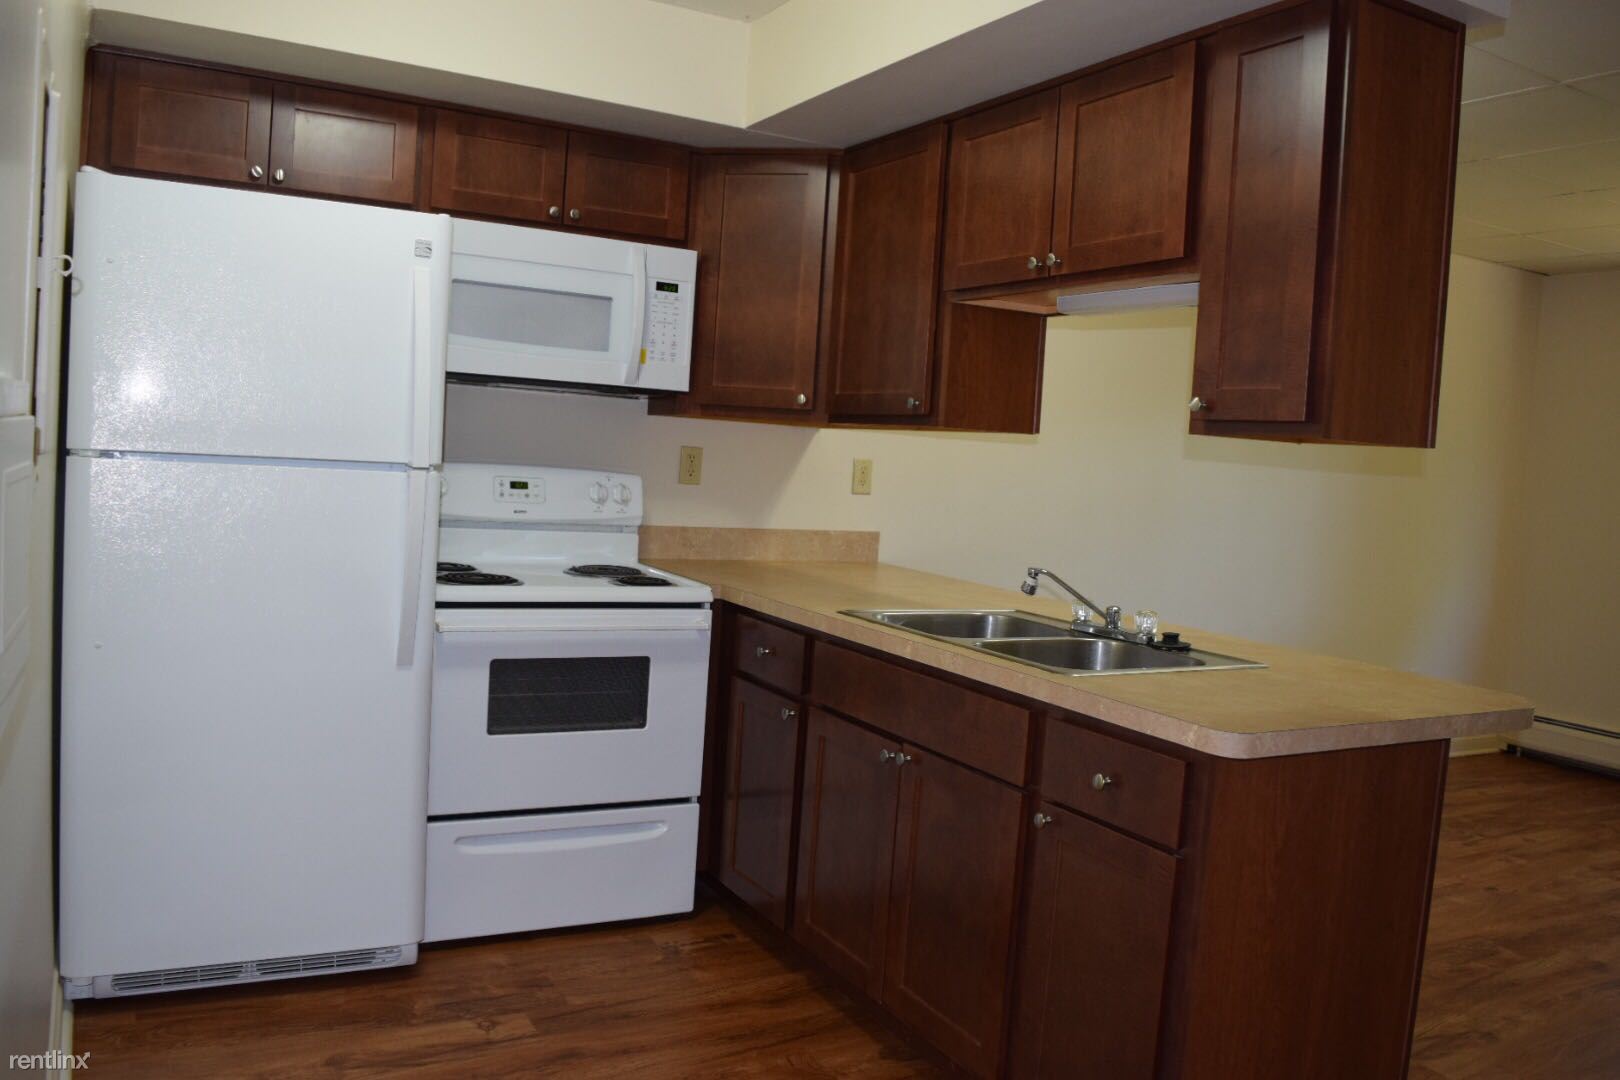 Upgraded 616 sq ft 1 br, hardwood floors, remodeled kitchen including micro